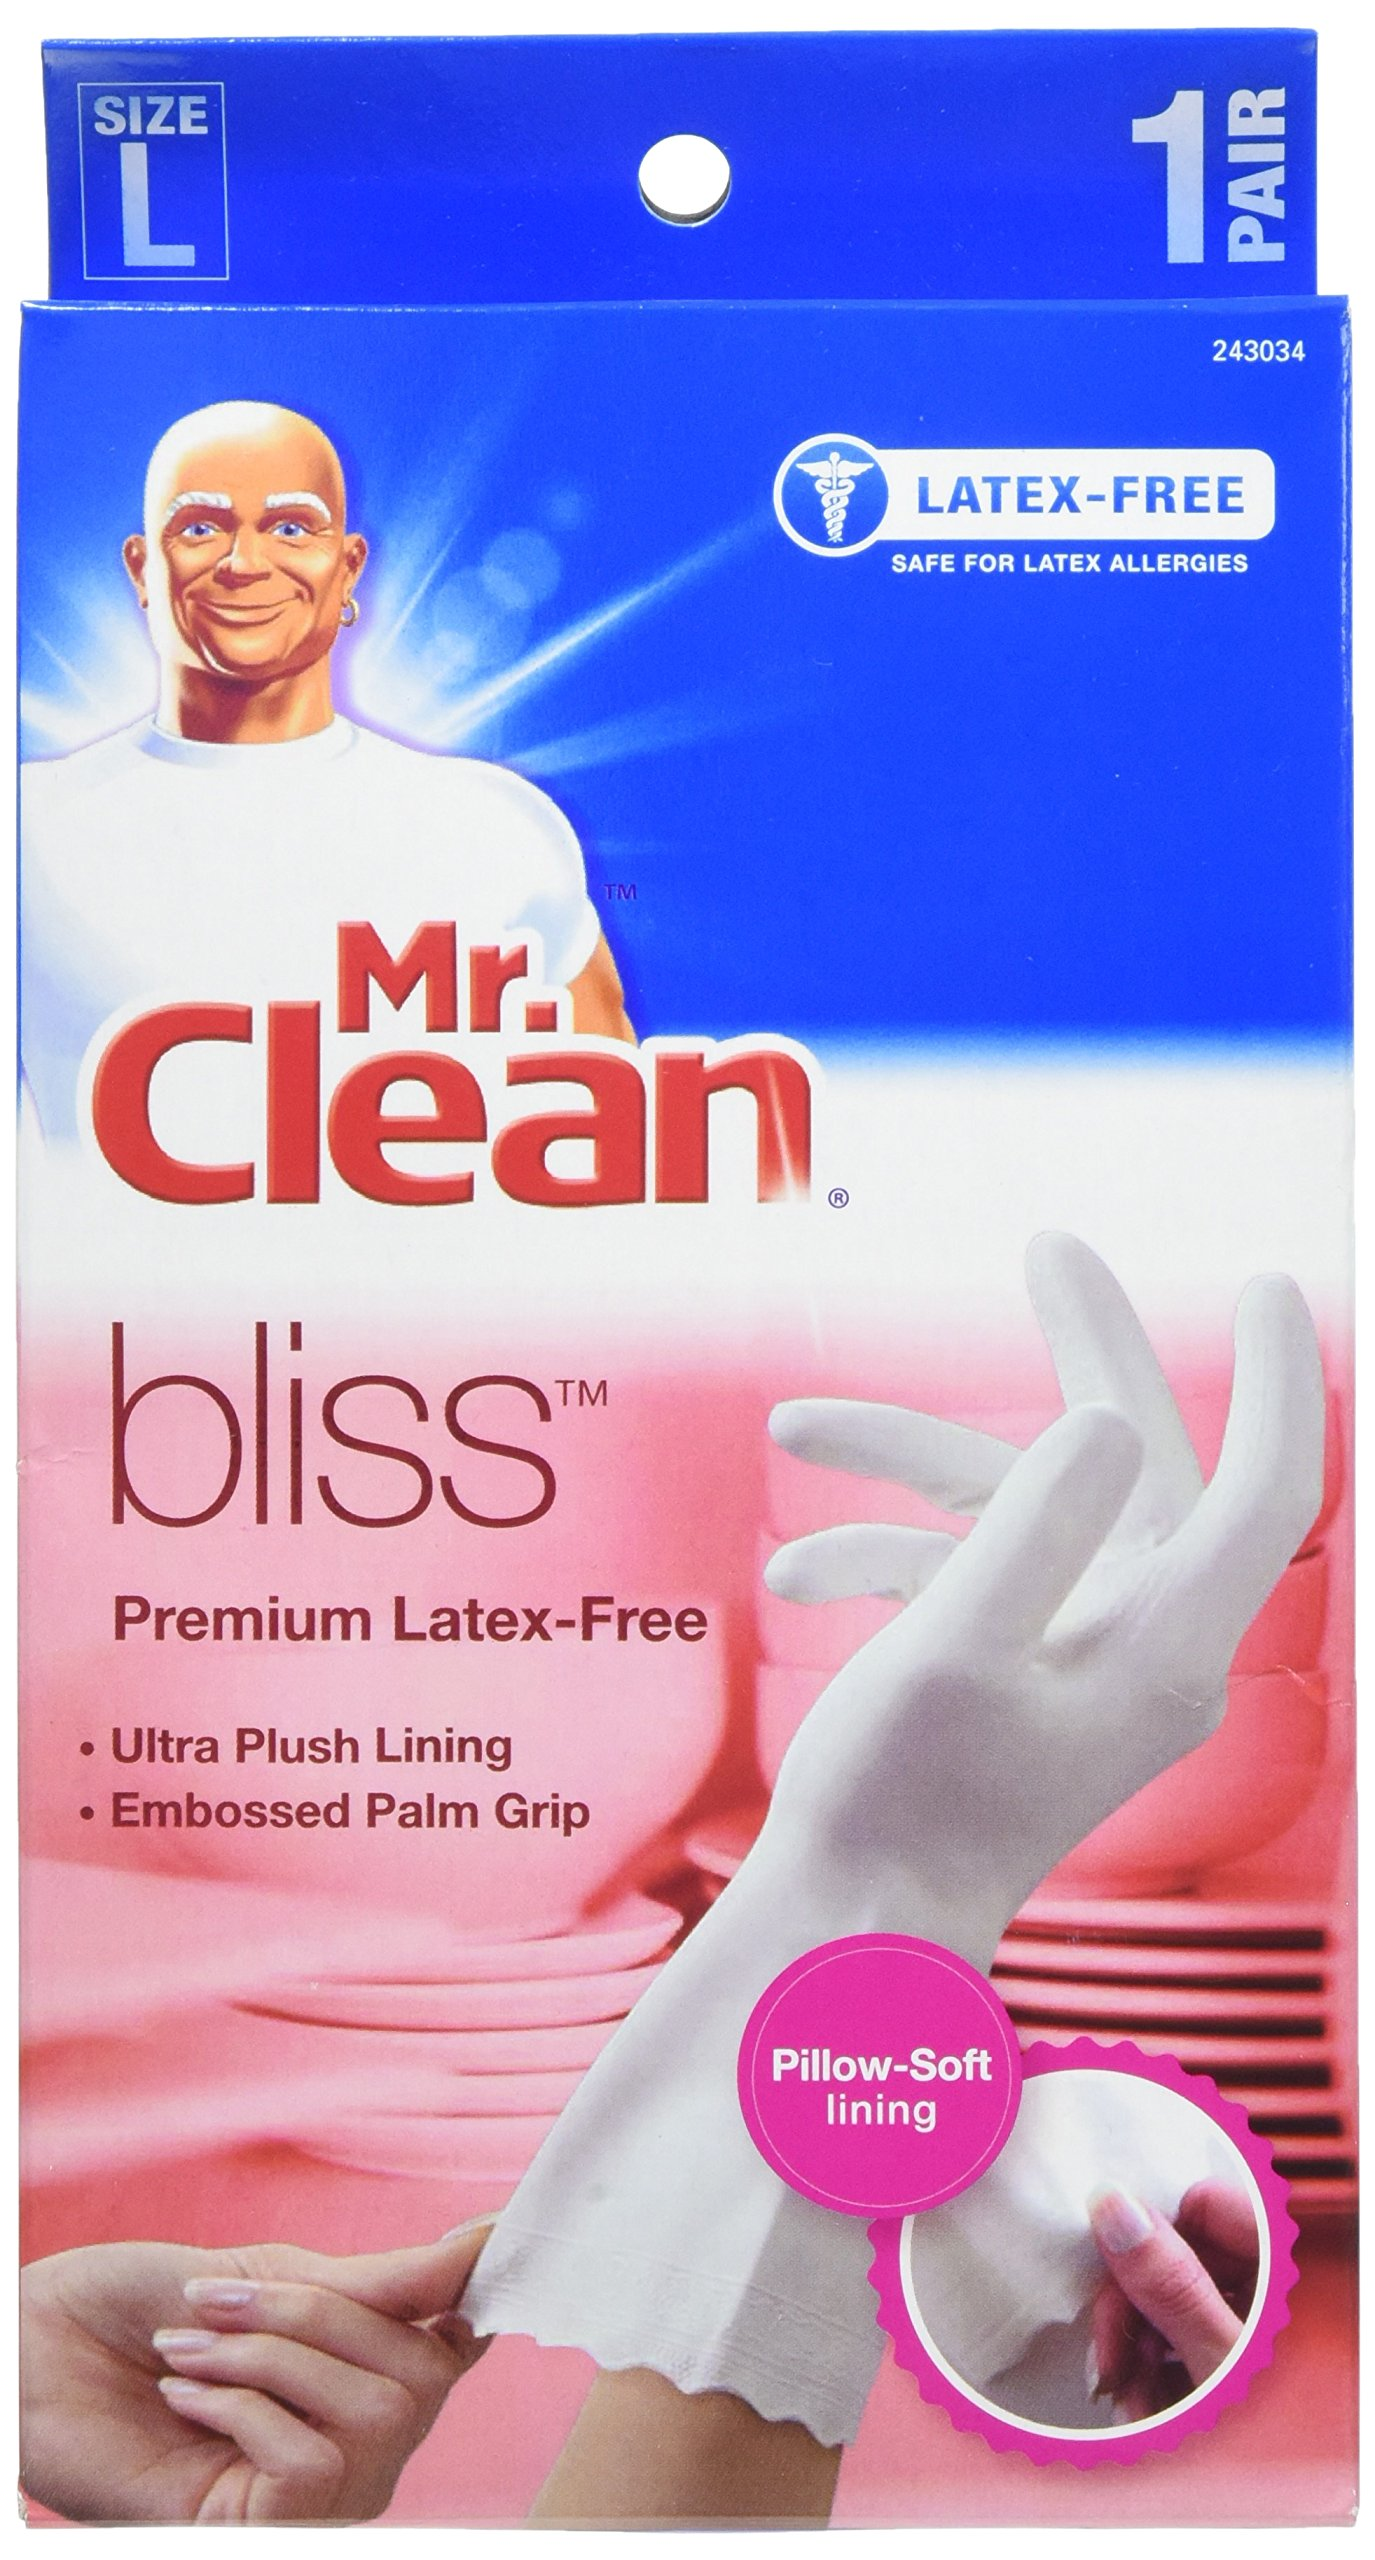 Mr. Clean Bliss Premium Latex-Free Gloves, Large, 2 pairs